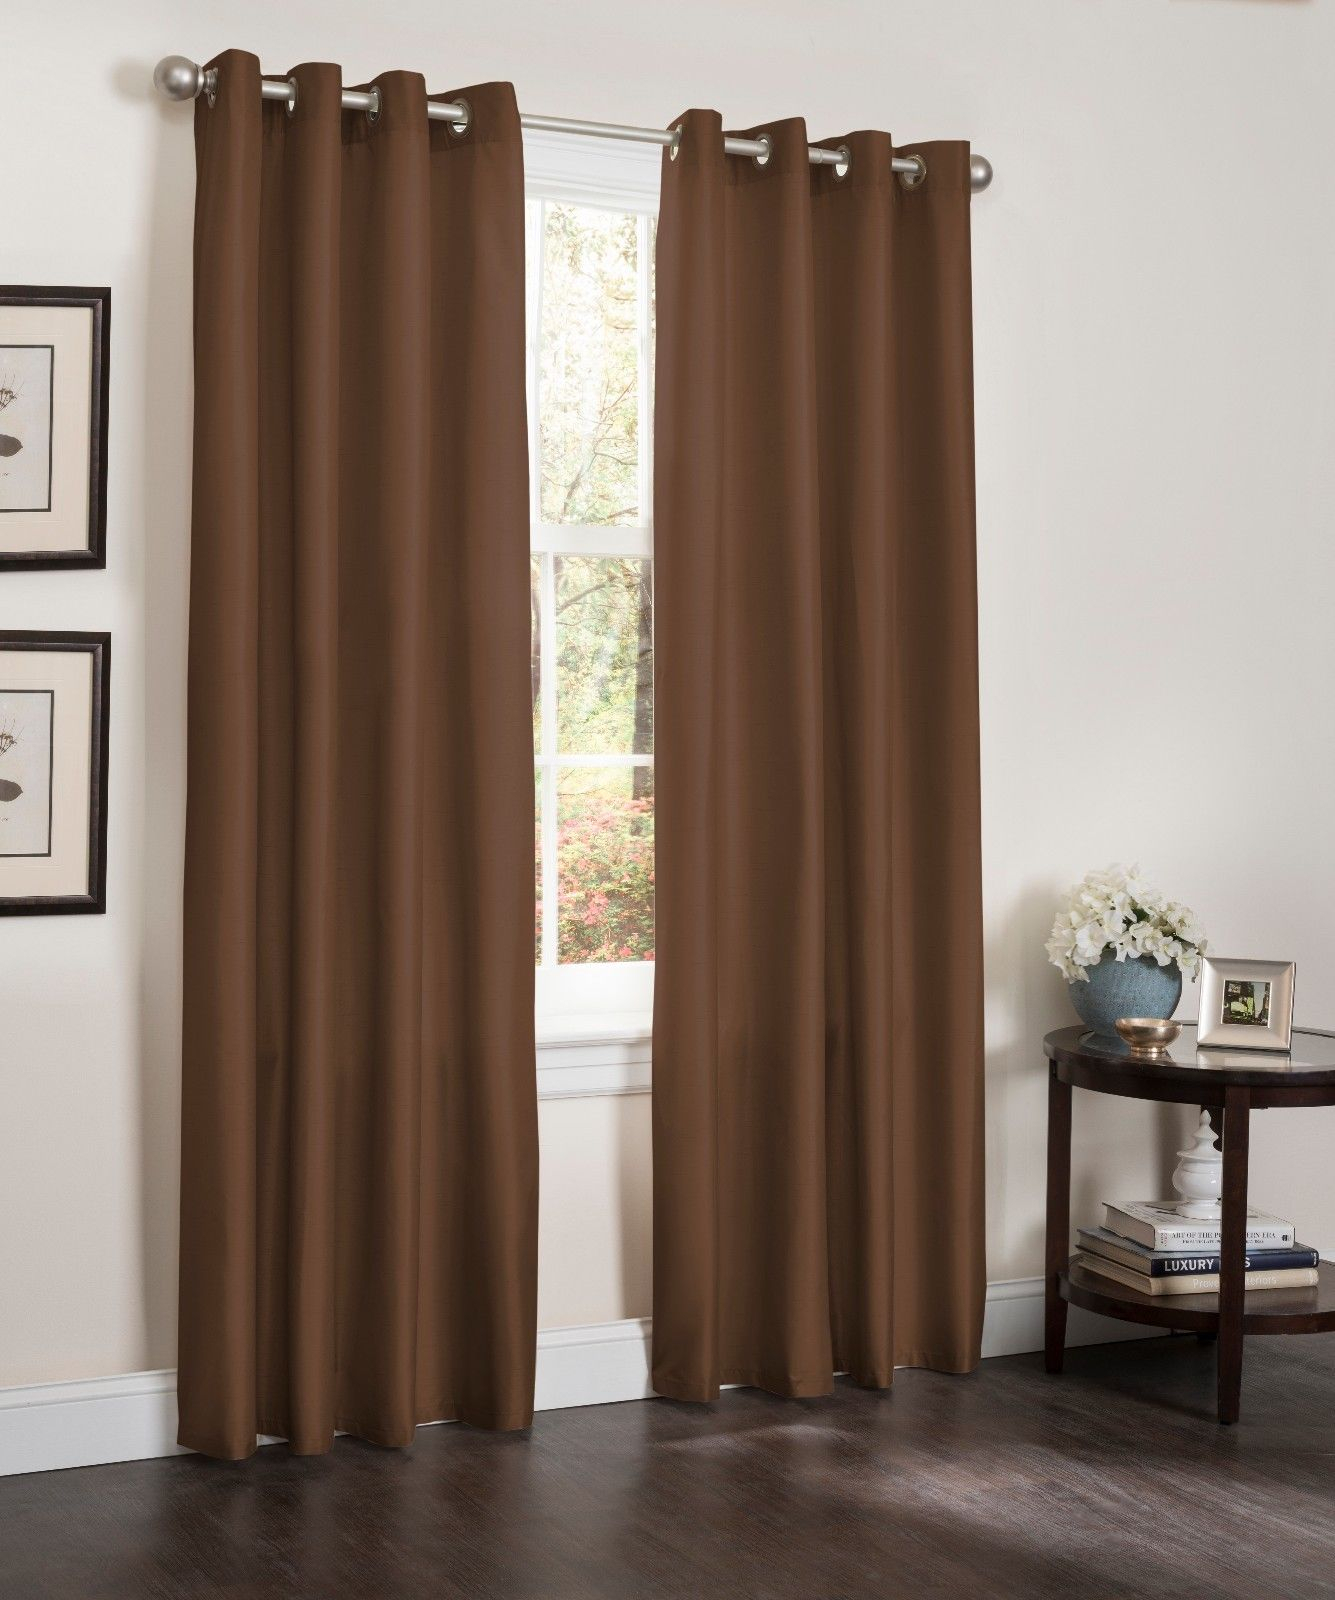 """Blackout Window Curtain Panel, 54"""" X 90"""", Faux Silk Thermal Insulated Grommet Top, Erin, 1 Panel (chocolate) With Grommet Top Thermal Insulated Blackout Curtain Panel Pairs (View 13 of 20)"""